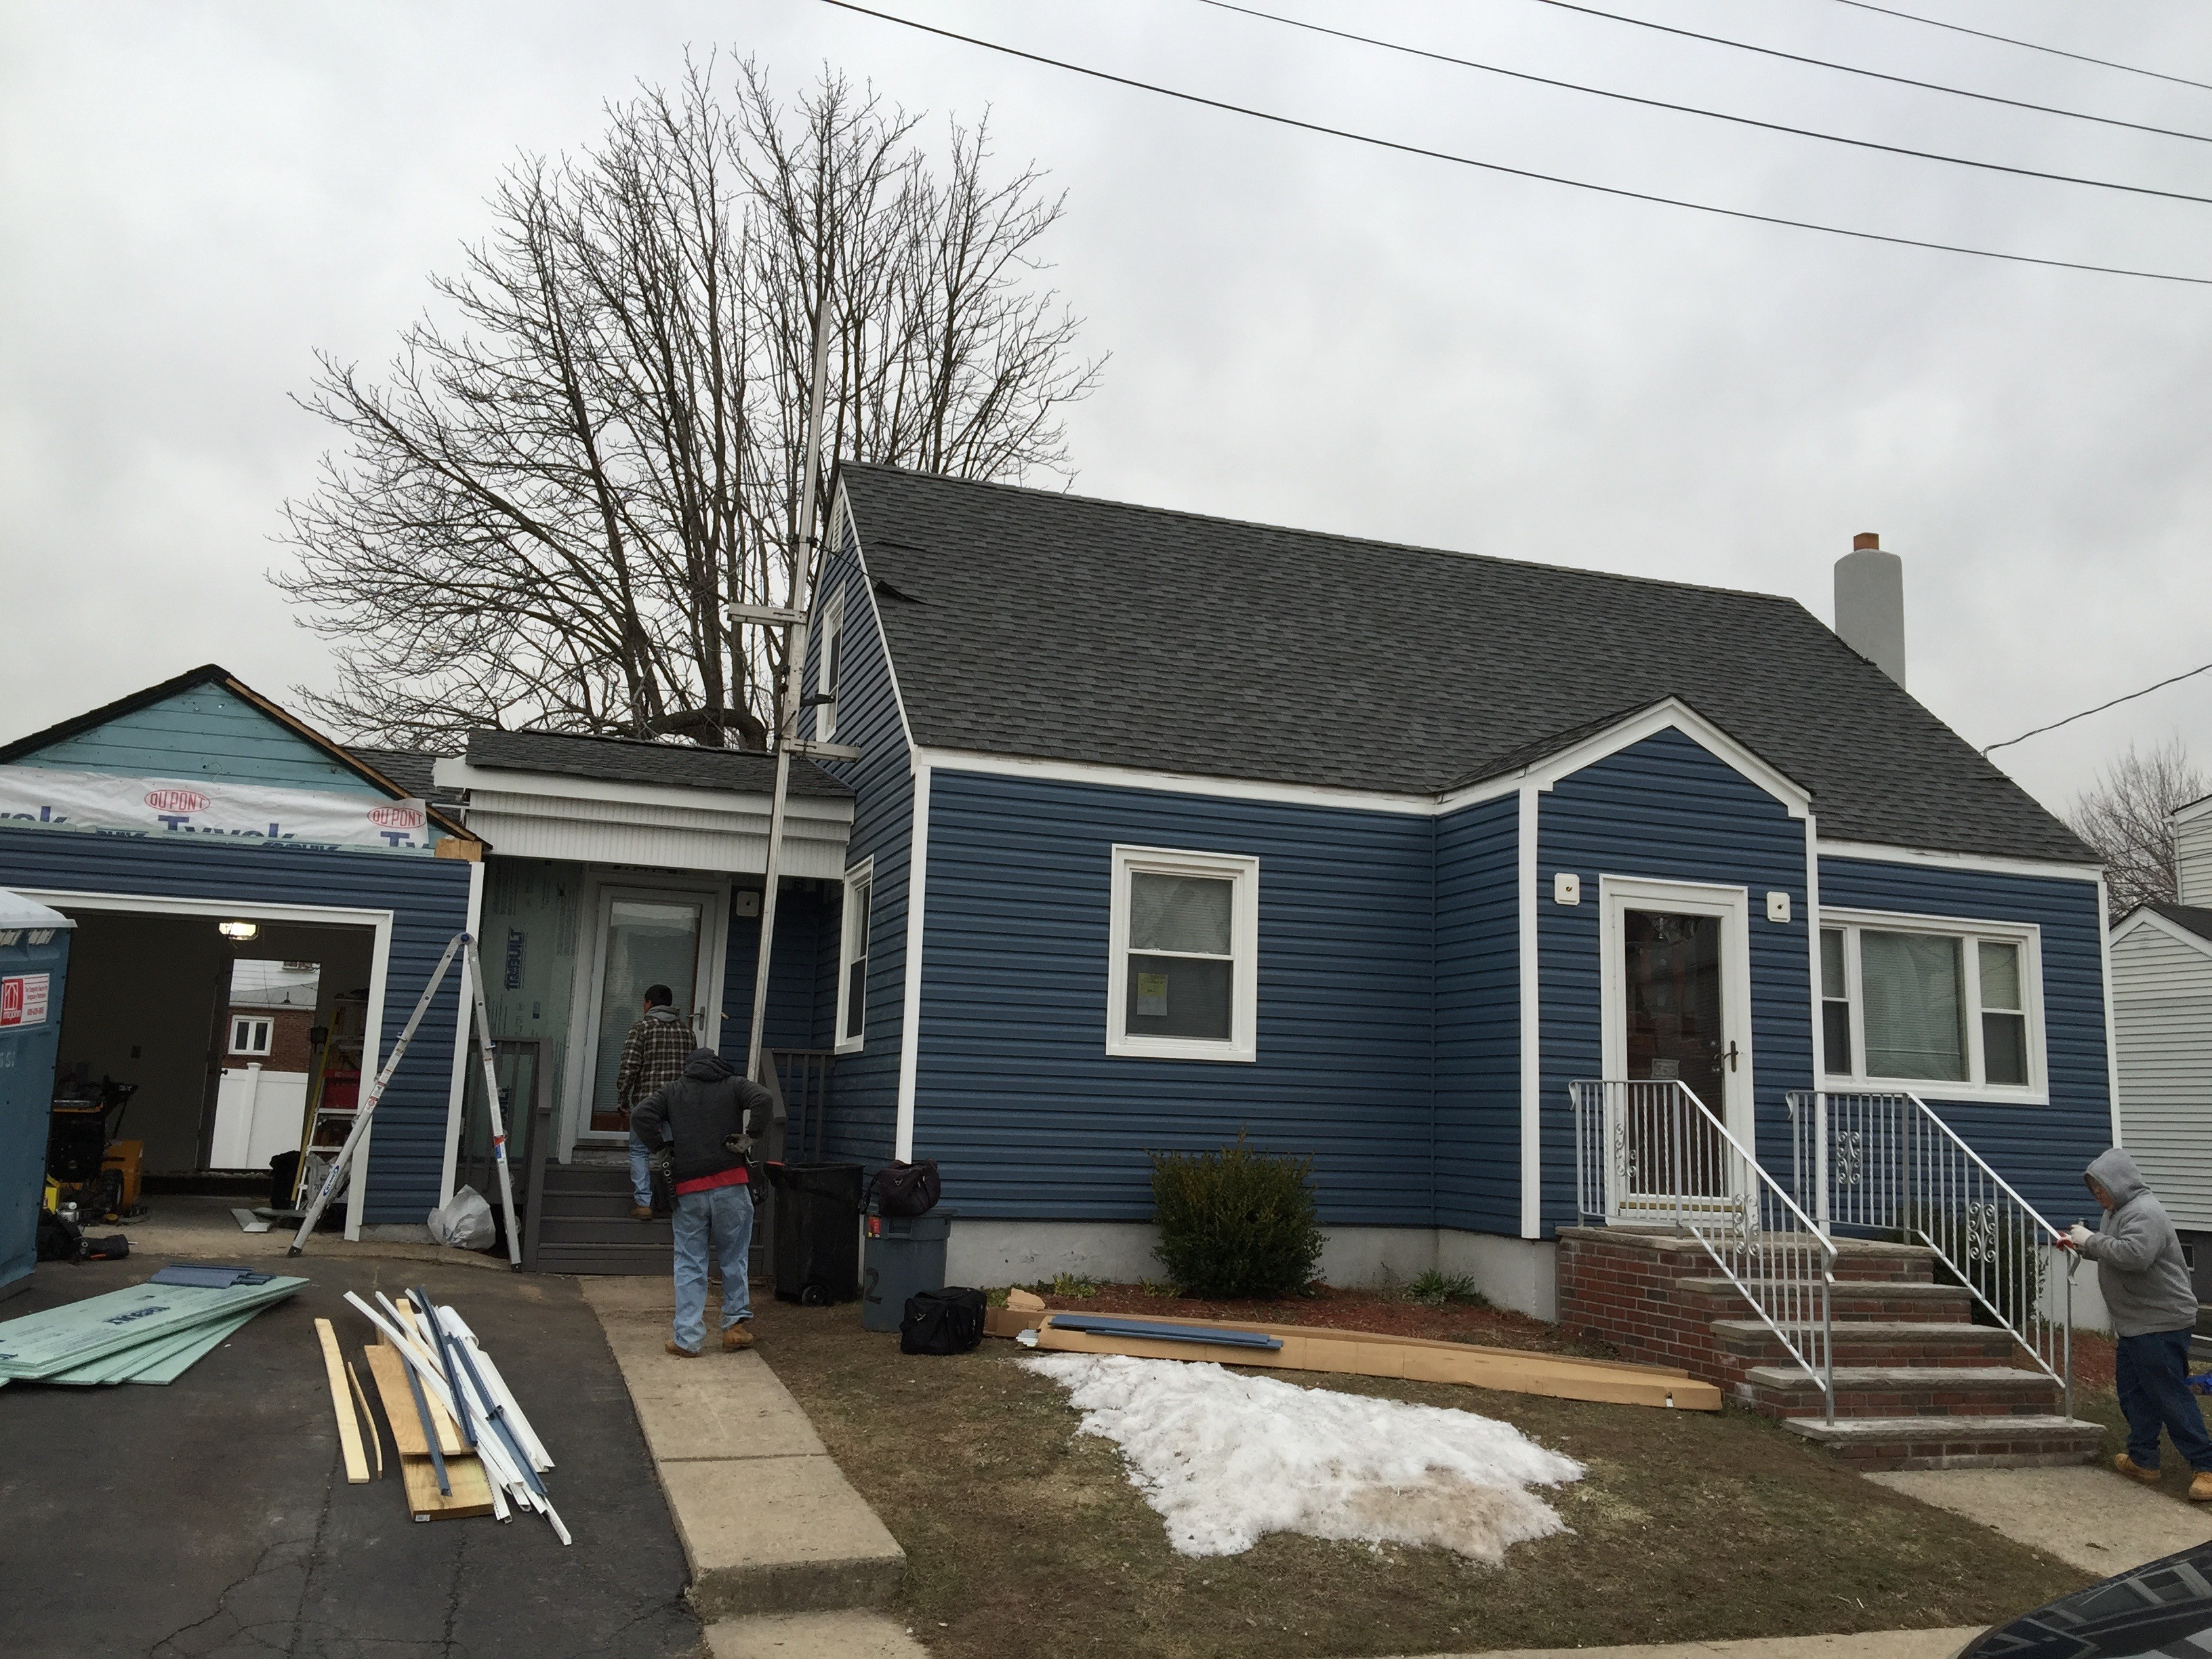 South orange nj crane insulated siding 973 487 3704 nj for Best vinyl siding colors